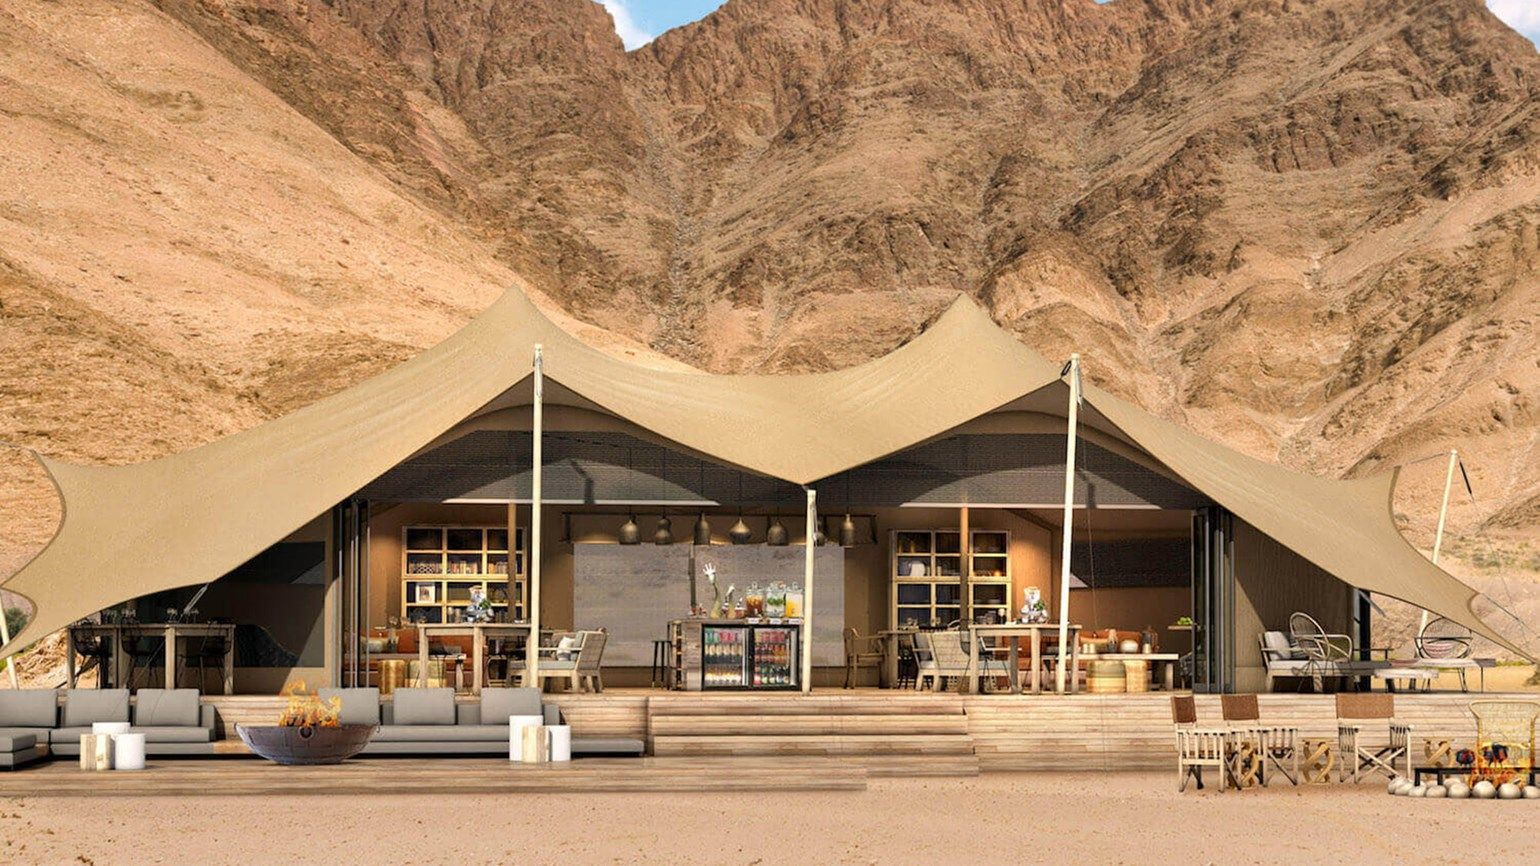 New lodge to open in Namibia's remote Kaokoland